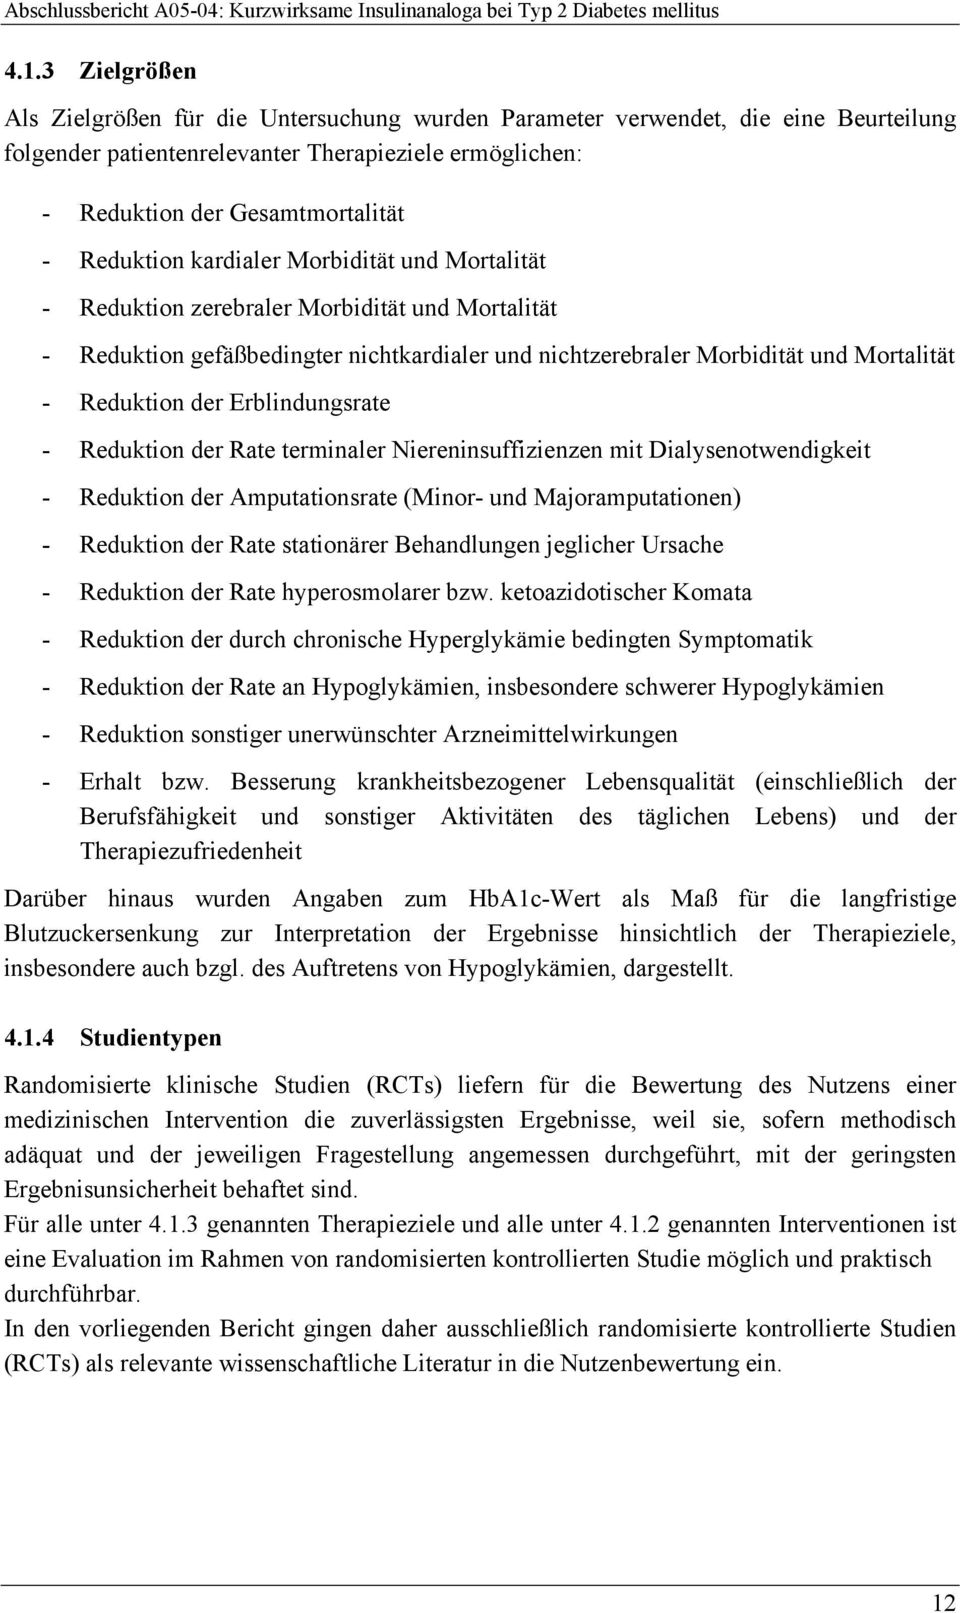 Erblindungsrate - Reduktion der Rate terminaler Niereninsuffizienzen mit Dialysenotwendigkeit - Reduktion der Amputationsrate (Minor- und Majoramputationen) - Reduktion der Rate stationärer